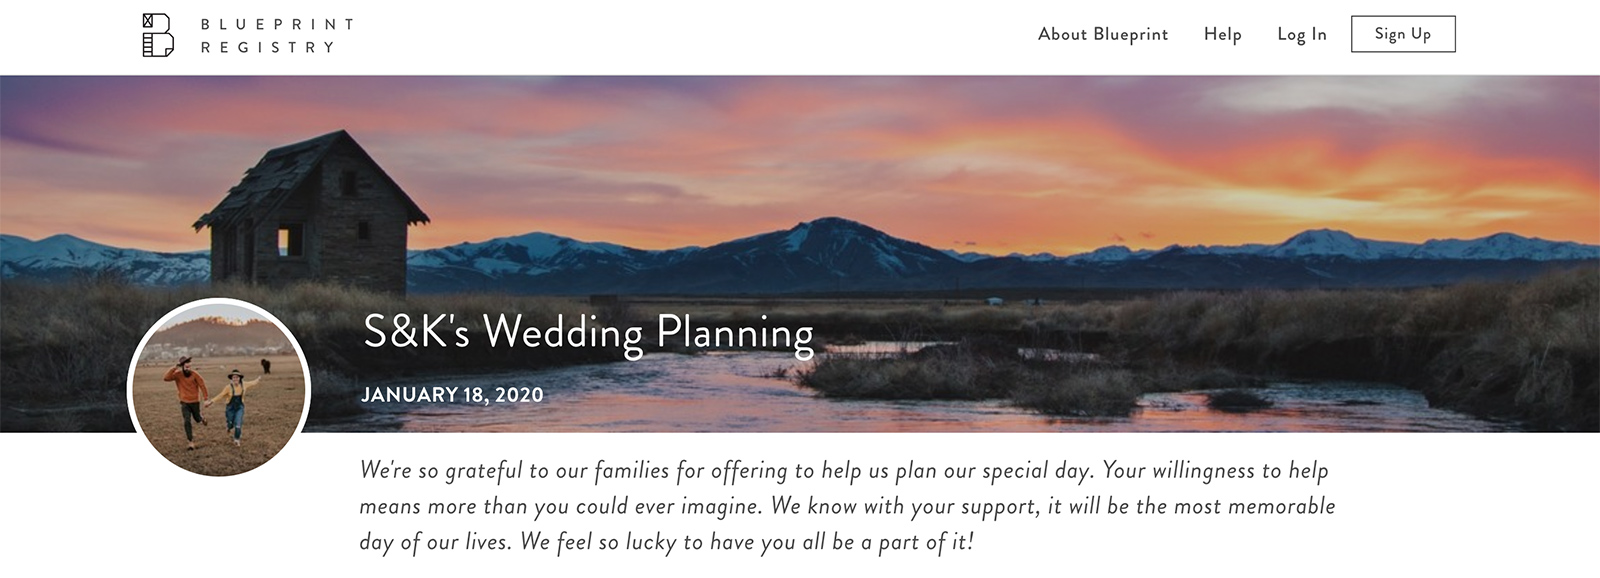 Screen shot of sample wedding fund registry for S&K's Wedding Planning